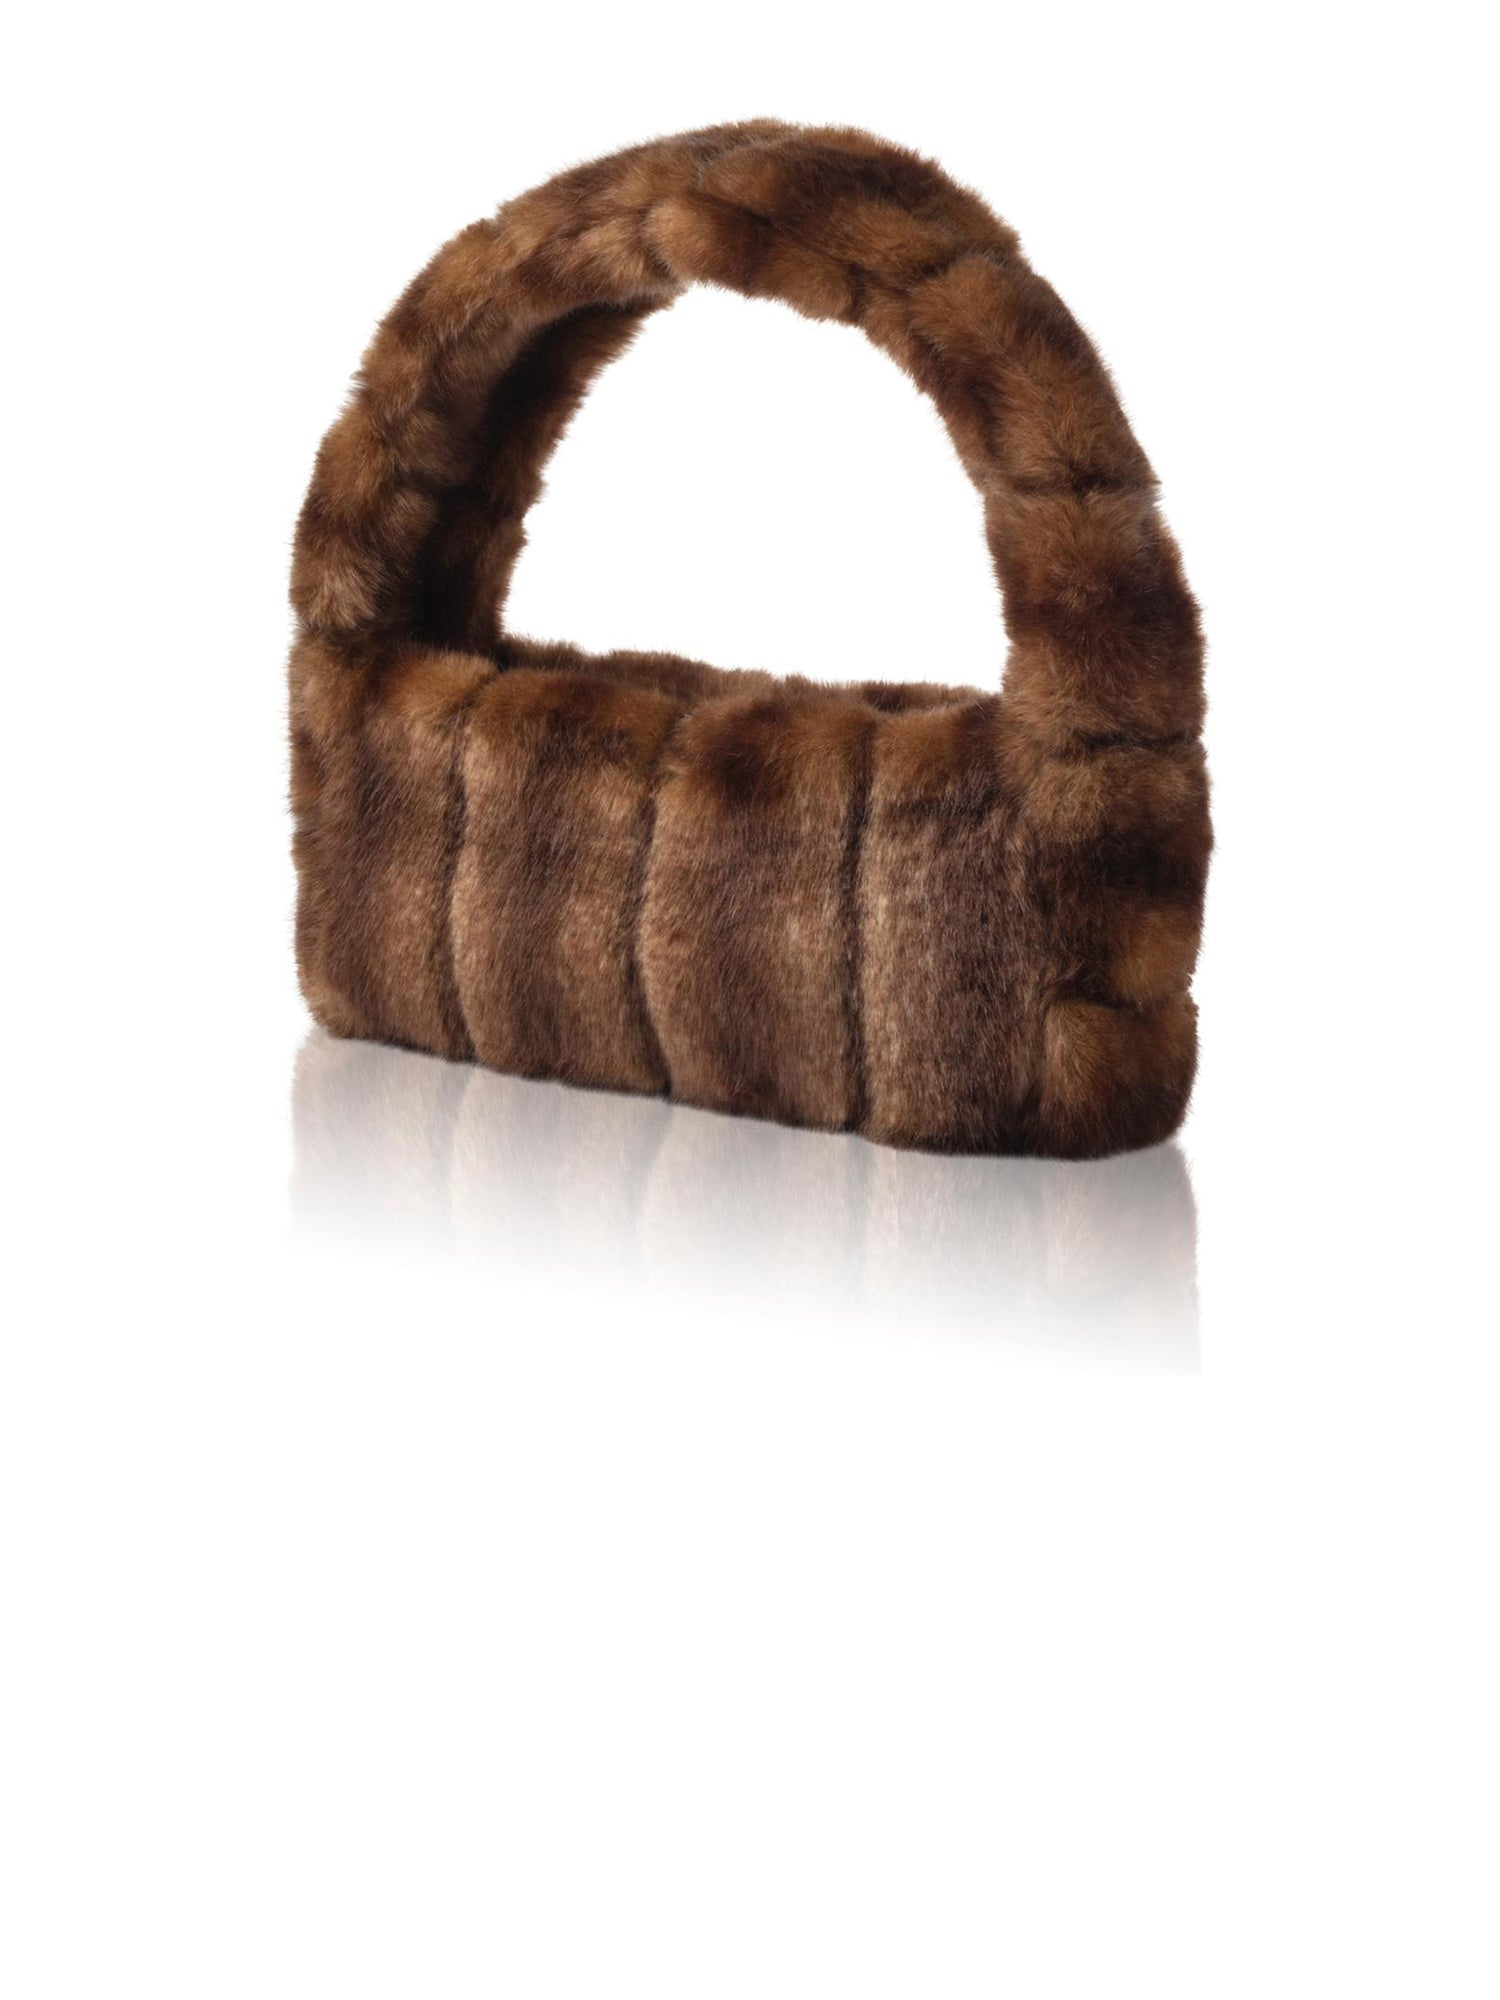 A Packshot Of Marei1998's Pampas Faux Fur Handbag In A Most Elegant Brown Color. Featuring Narrow Silhouette And Short Strap. A Chic Upgrade To Any Outfit. Front View.